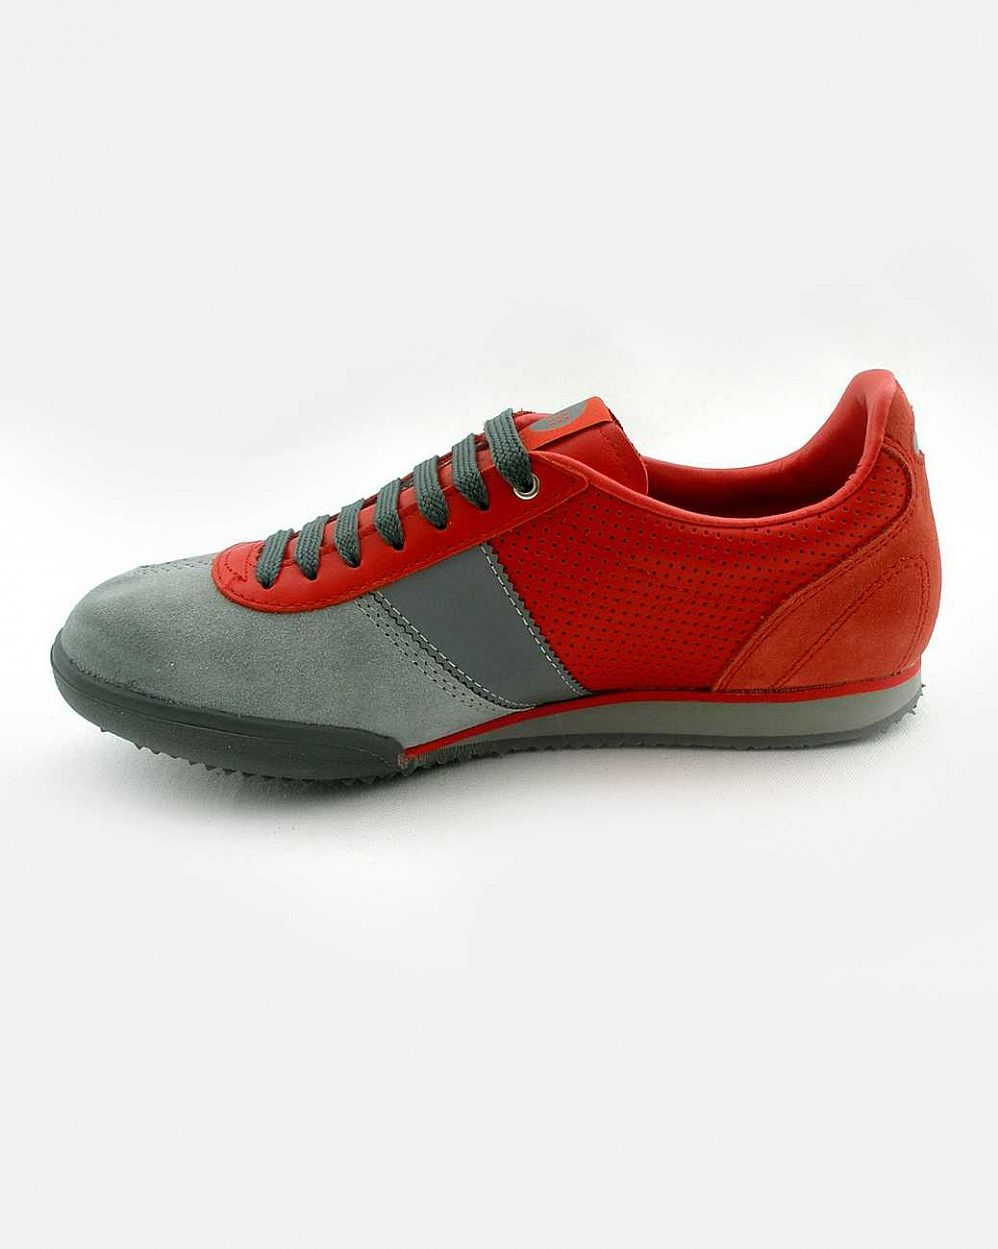 Кроссовки Botas Classic 66 38C PEDAL PROJECT red grey отзывы